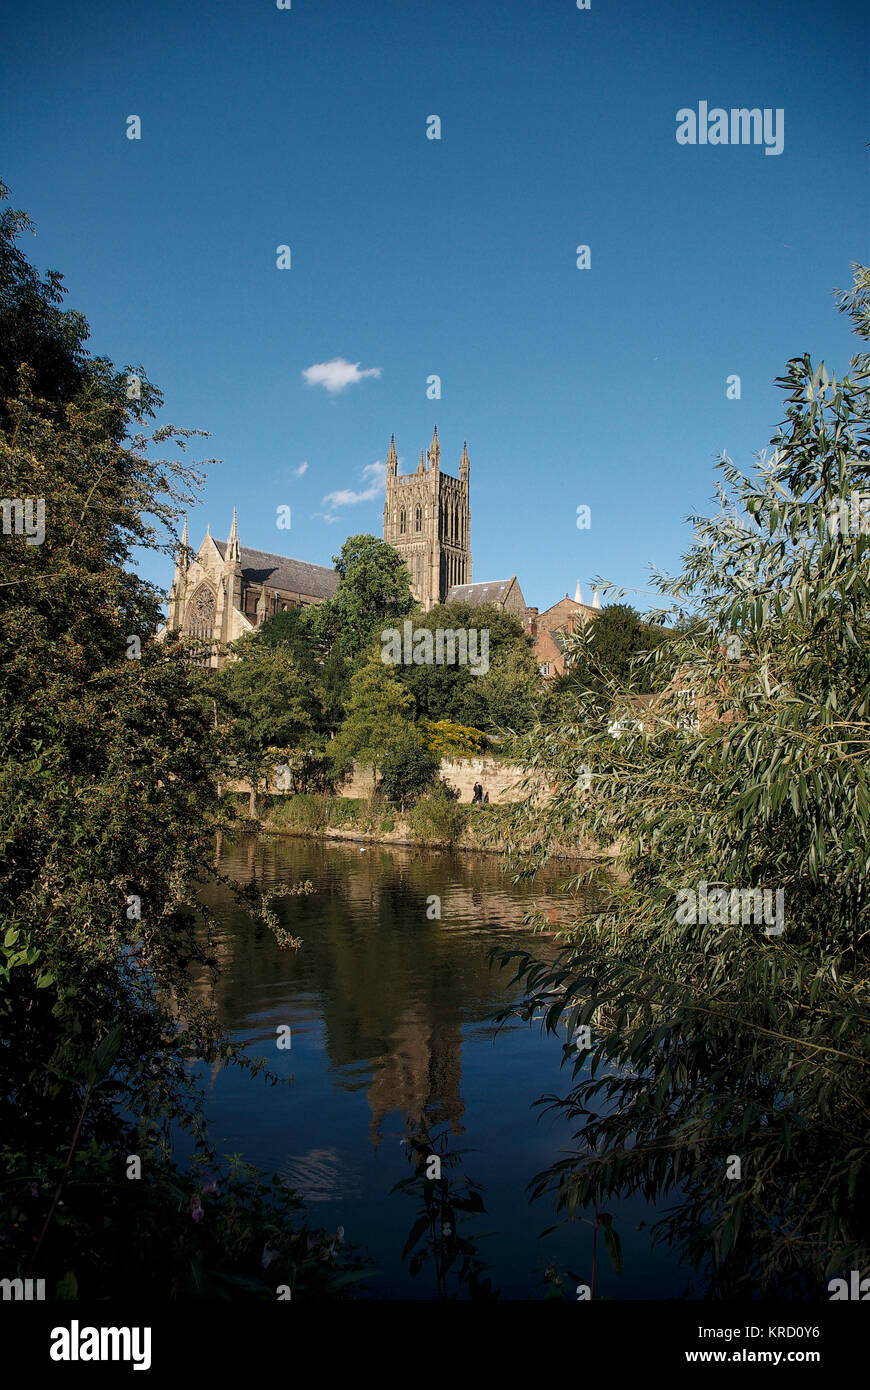 A view of Worcester Cathedral from across the River Severn.  The cathedral was built between 1084 and 1504.     - Stock Image